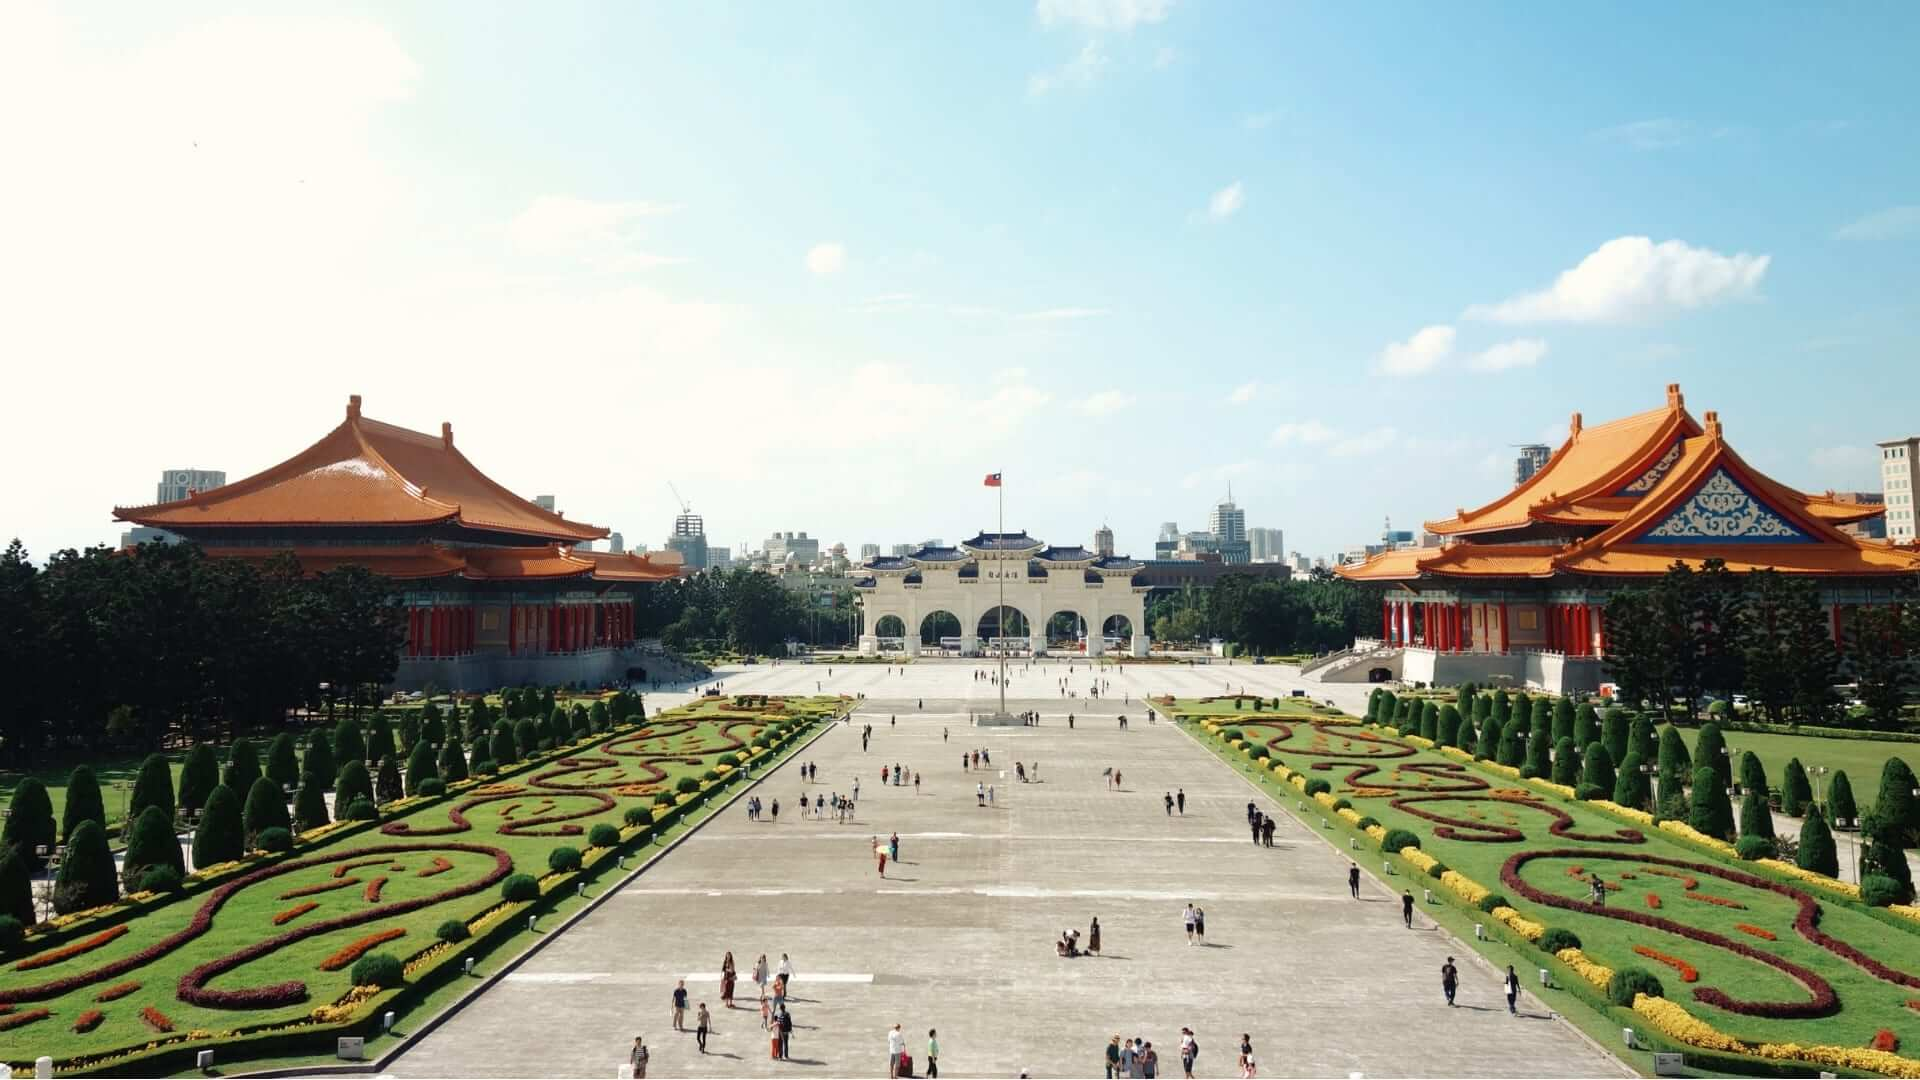 People are walking on a big square in a garden that is leading to a white temple in Taiwan.